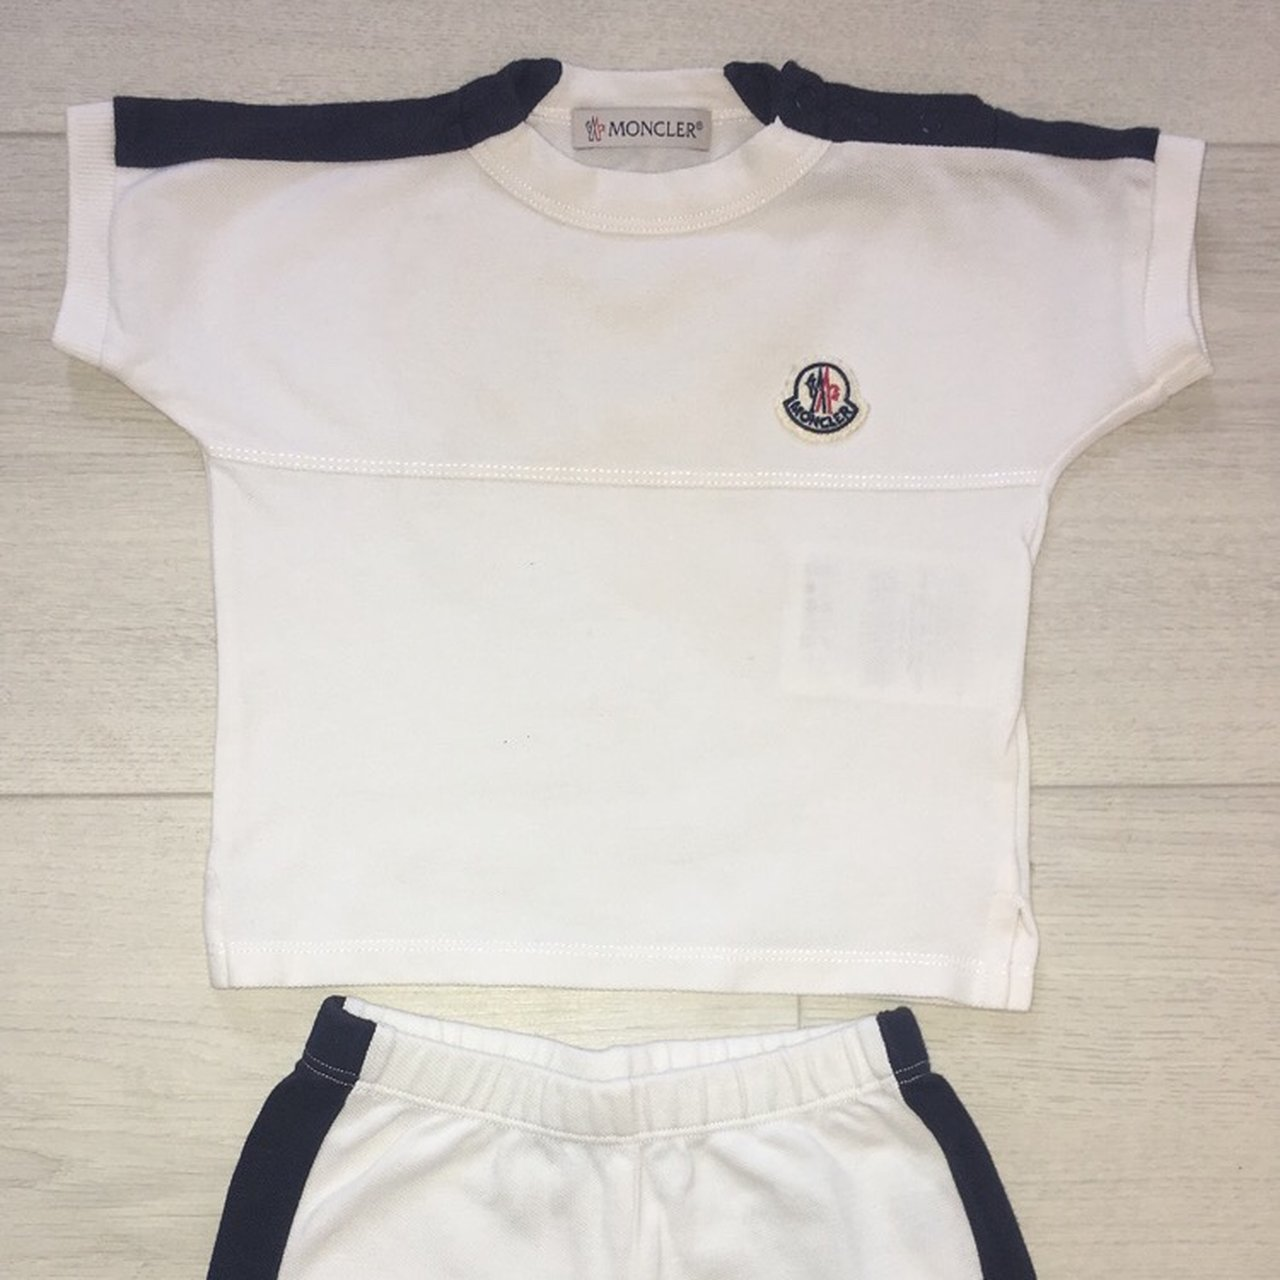 6ec173297 Private Listing - Moncler Baby Boy Top & Shorts Set. White & - Depop